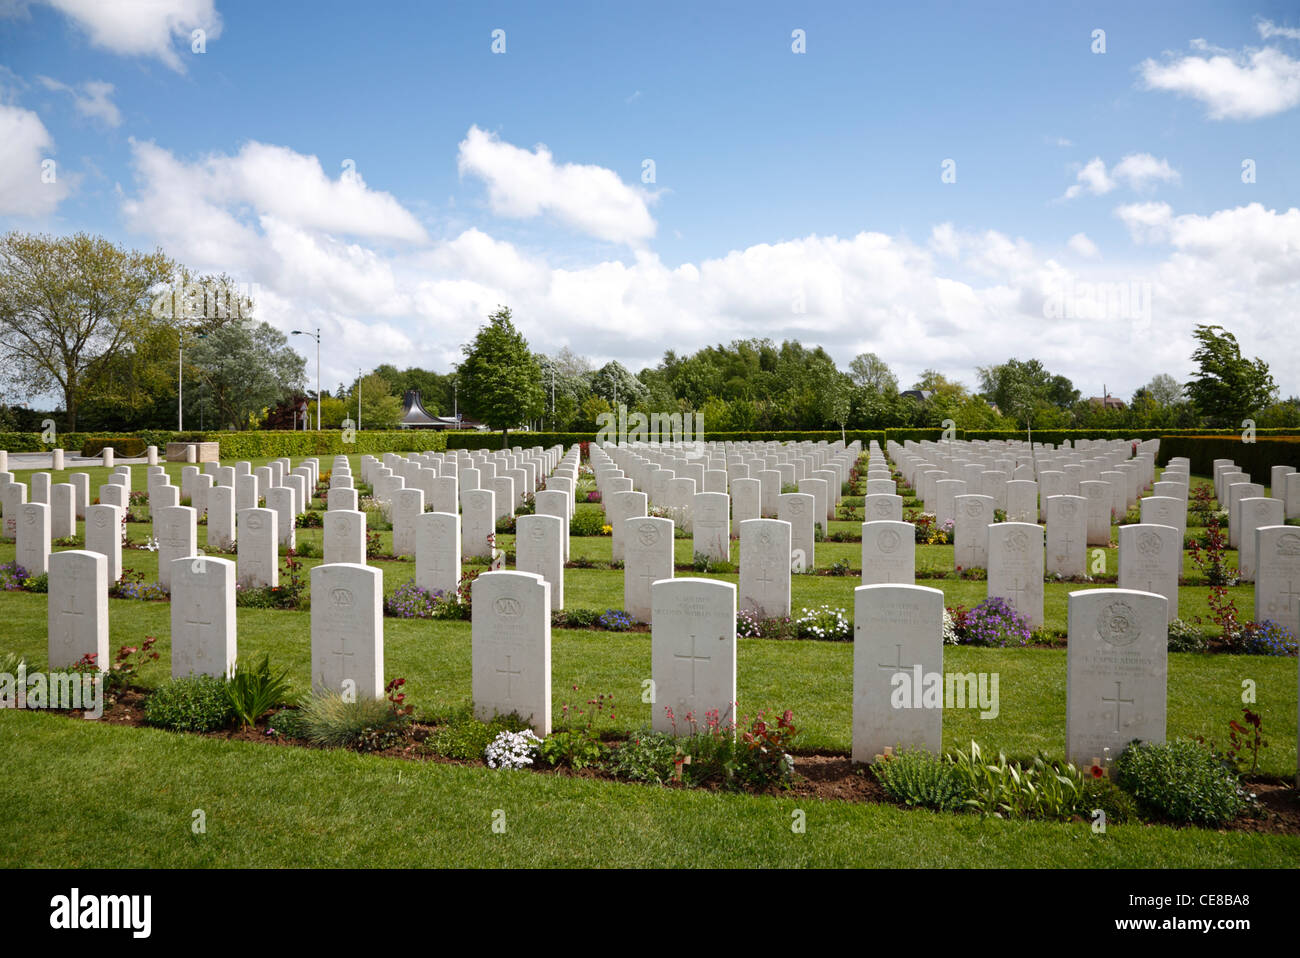 Graves in the Bayeux War Cemetery - The British War Cemetery at Bayeux, Normandy, France. Commonwealth war graves. Stock Photo